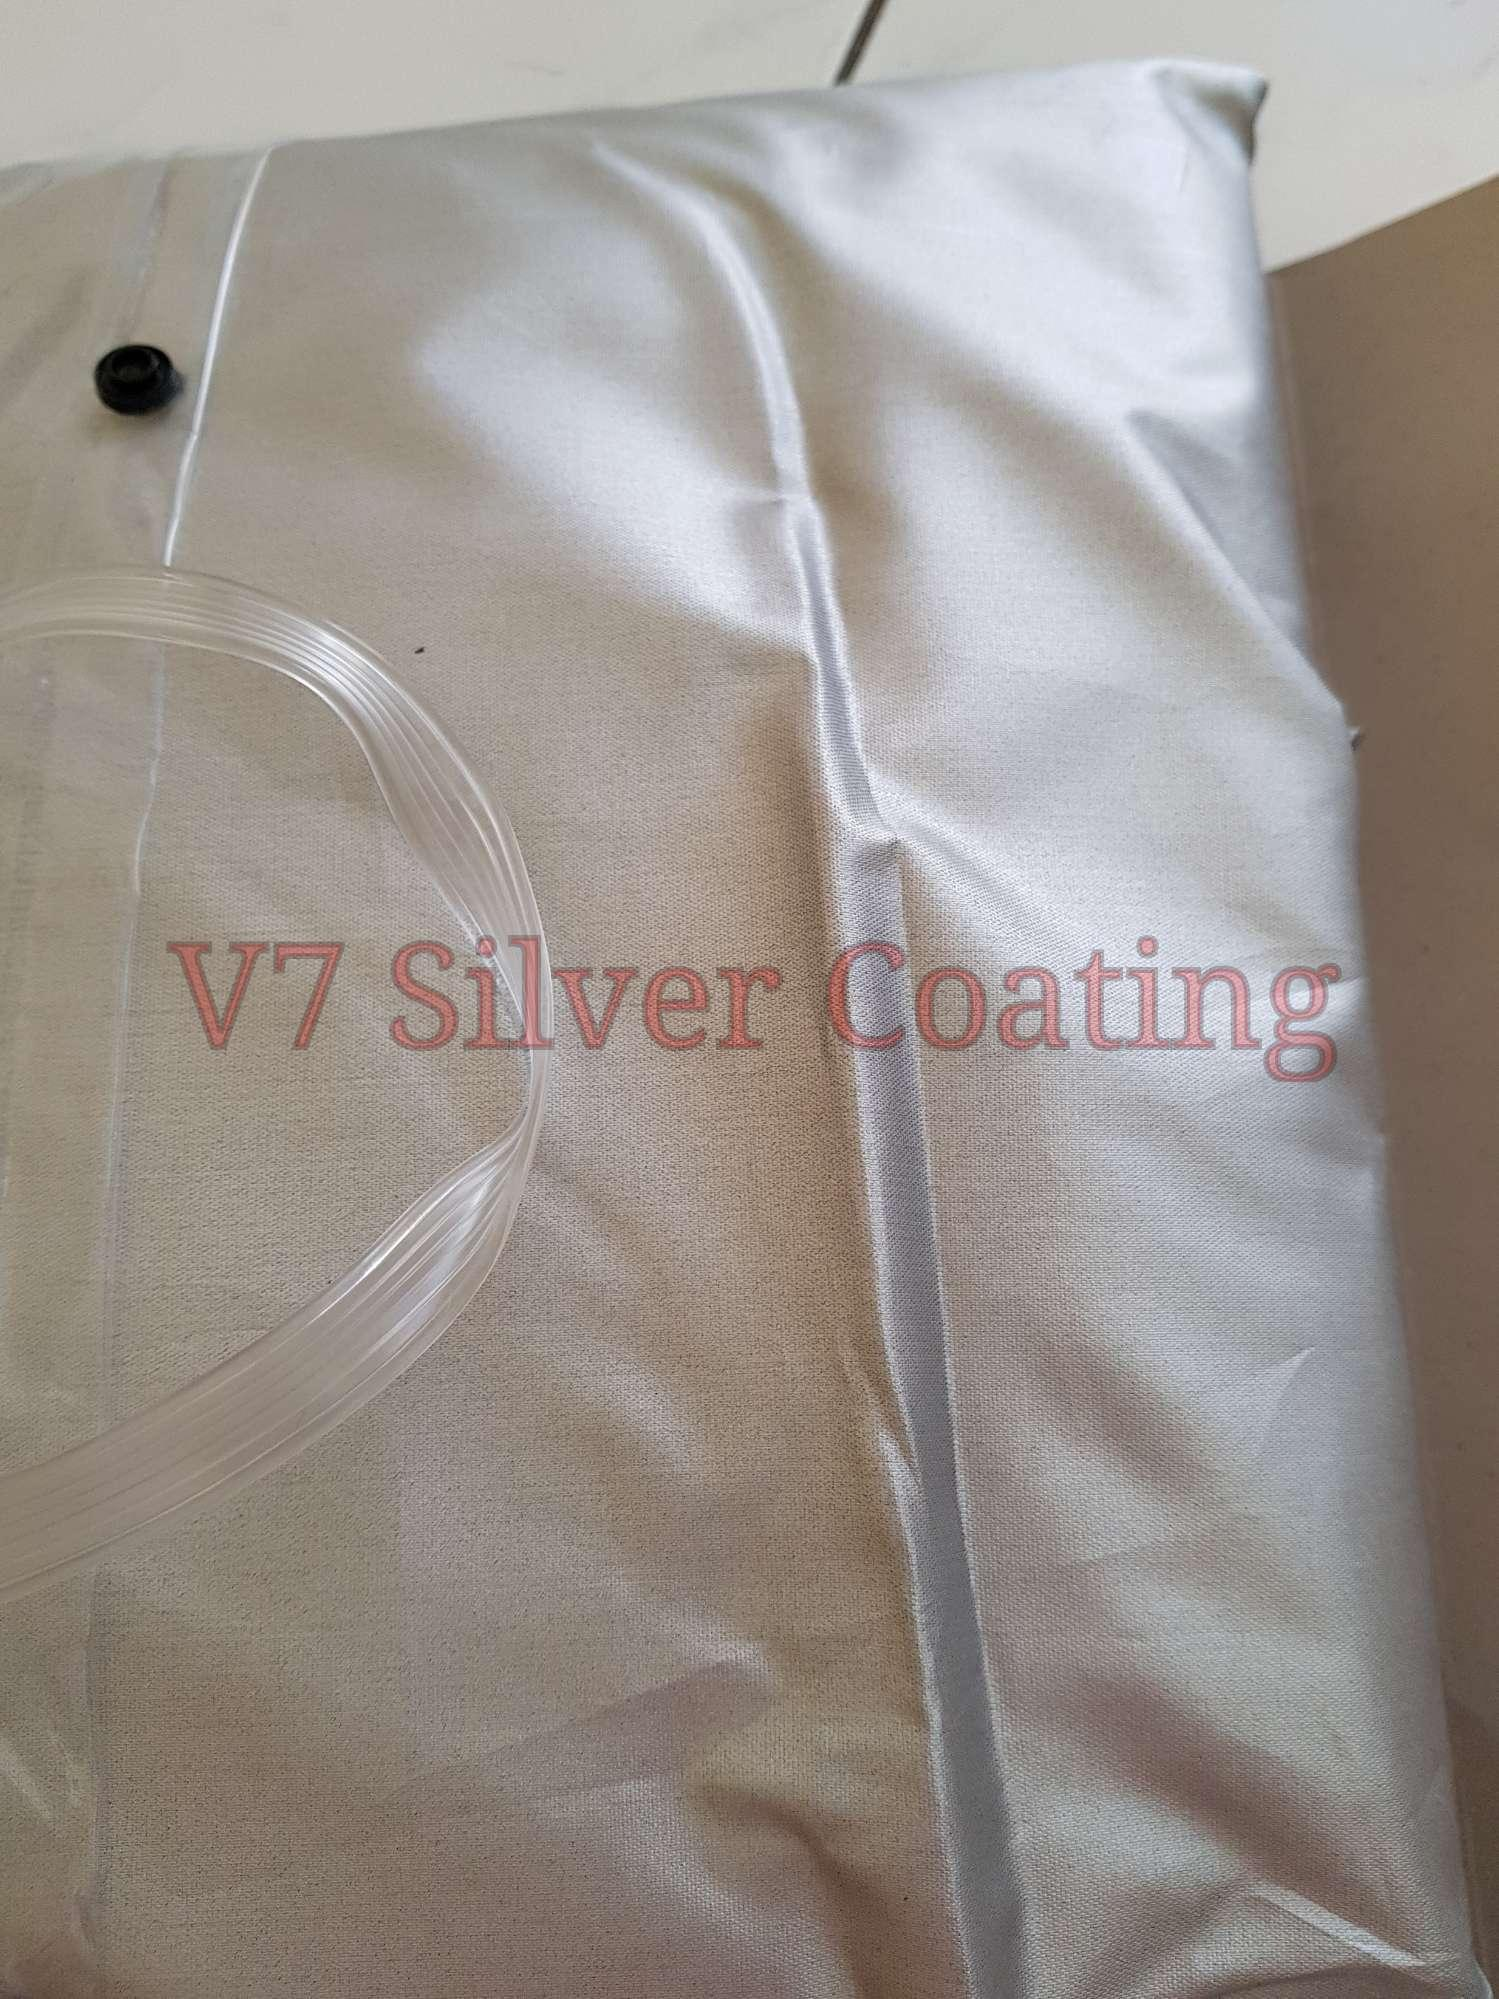 All New Avanza Sarung Mobil-All New Avanza Silver Coating Bodycover Mobil - 2 ...